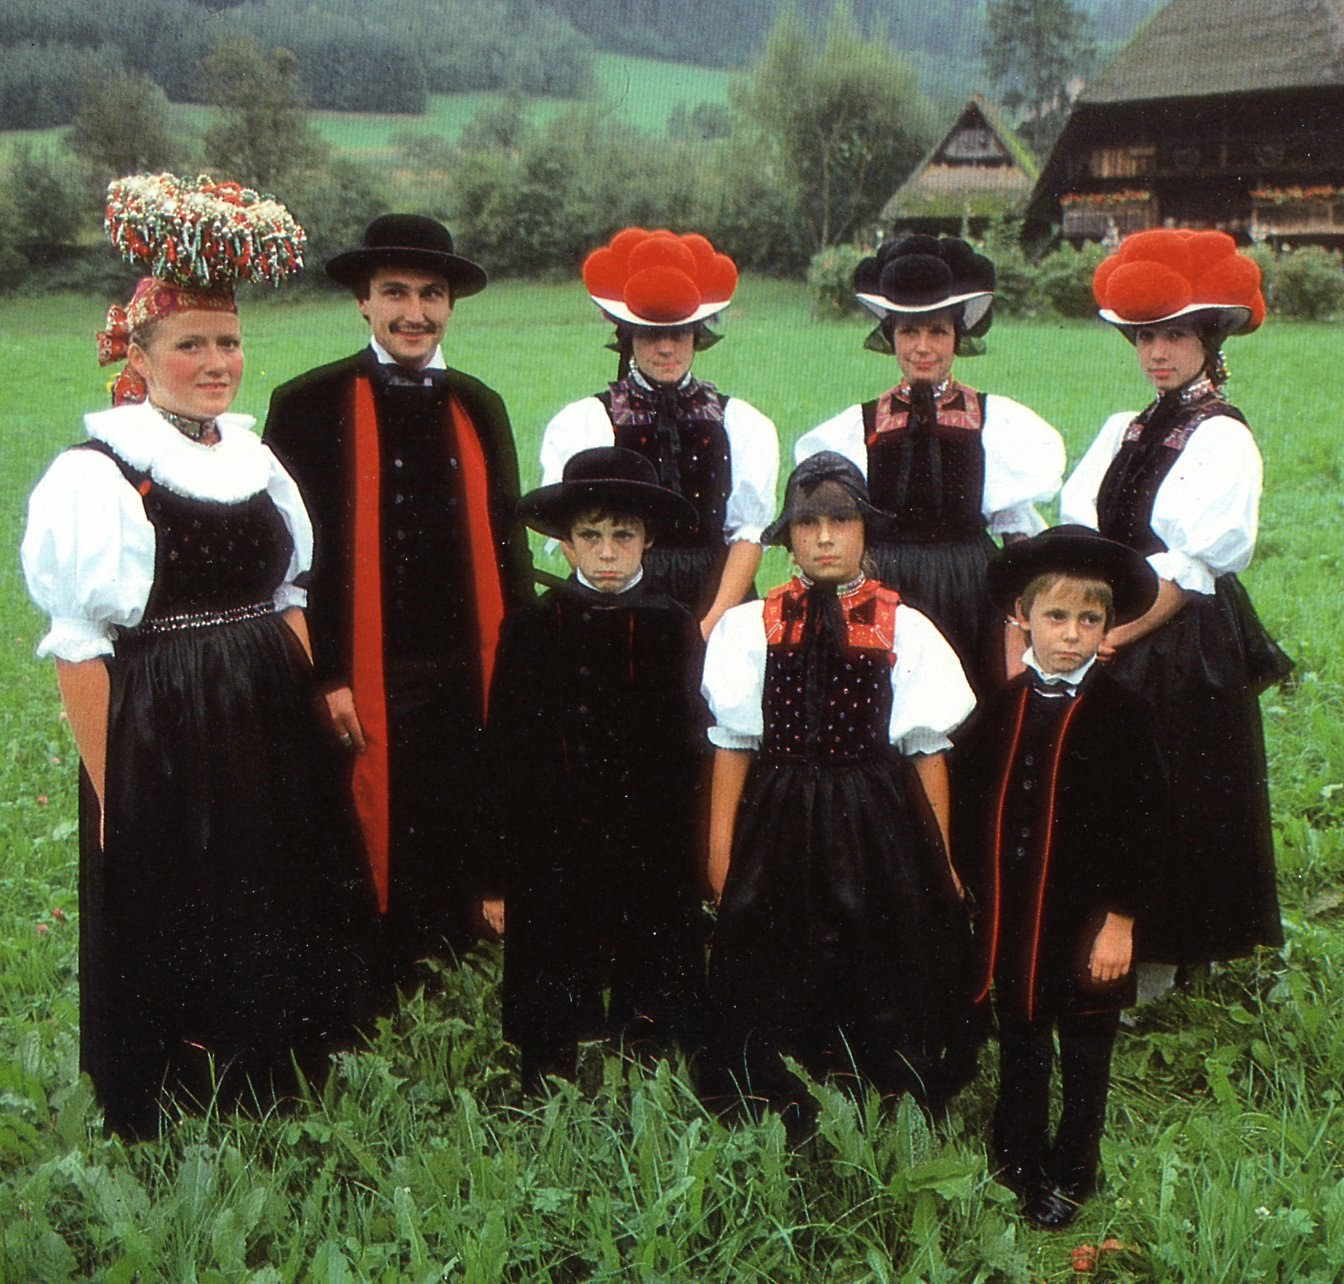 Traditional: FolkCostume&Embroidery: Short Overview Of Traditional